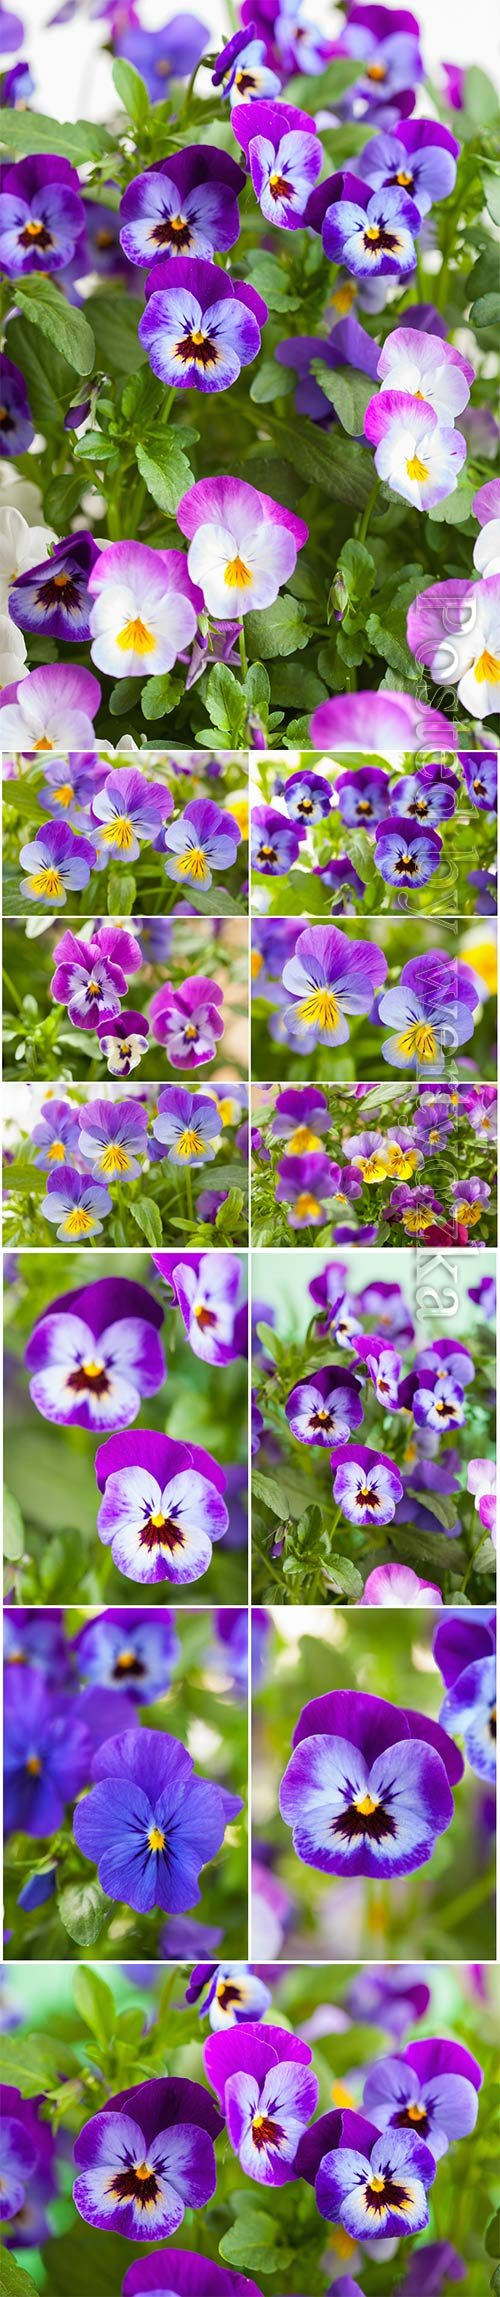 Beautiful pansy summer flowers stock photo